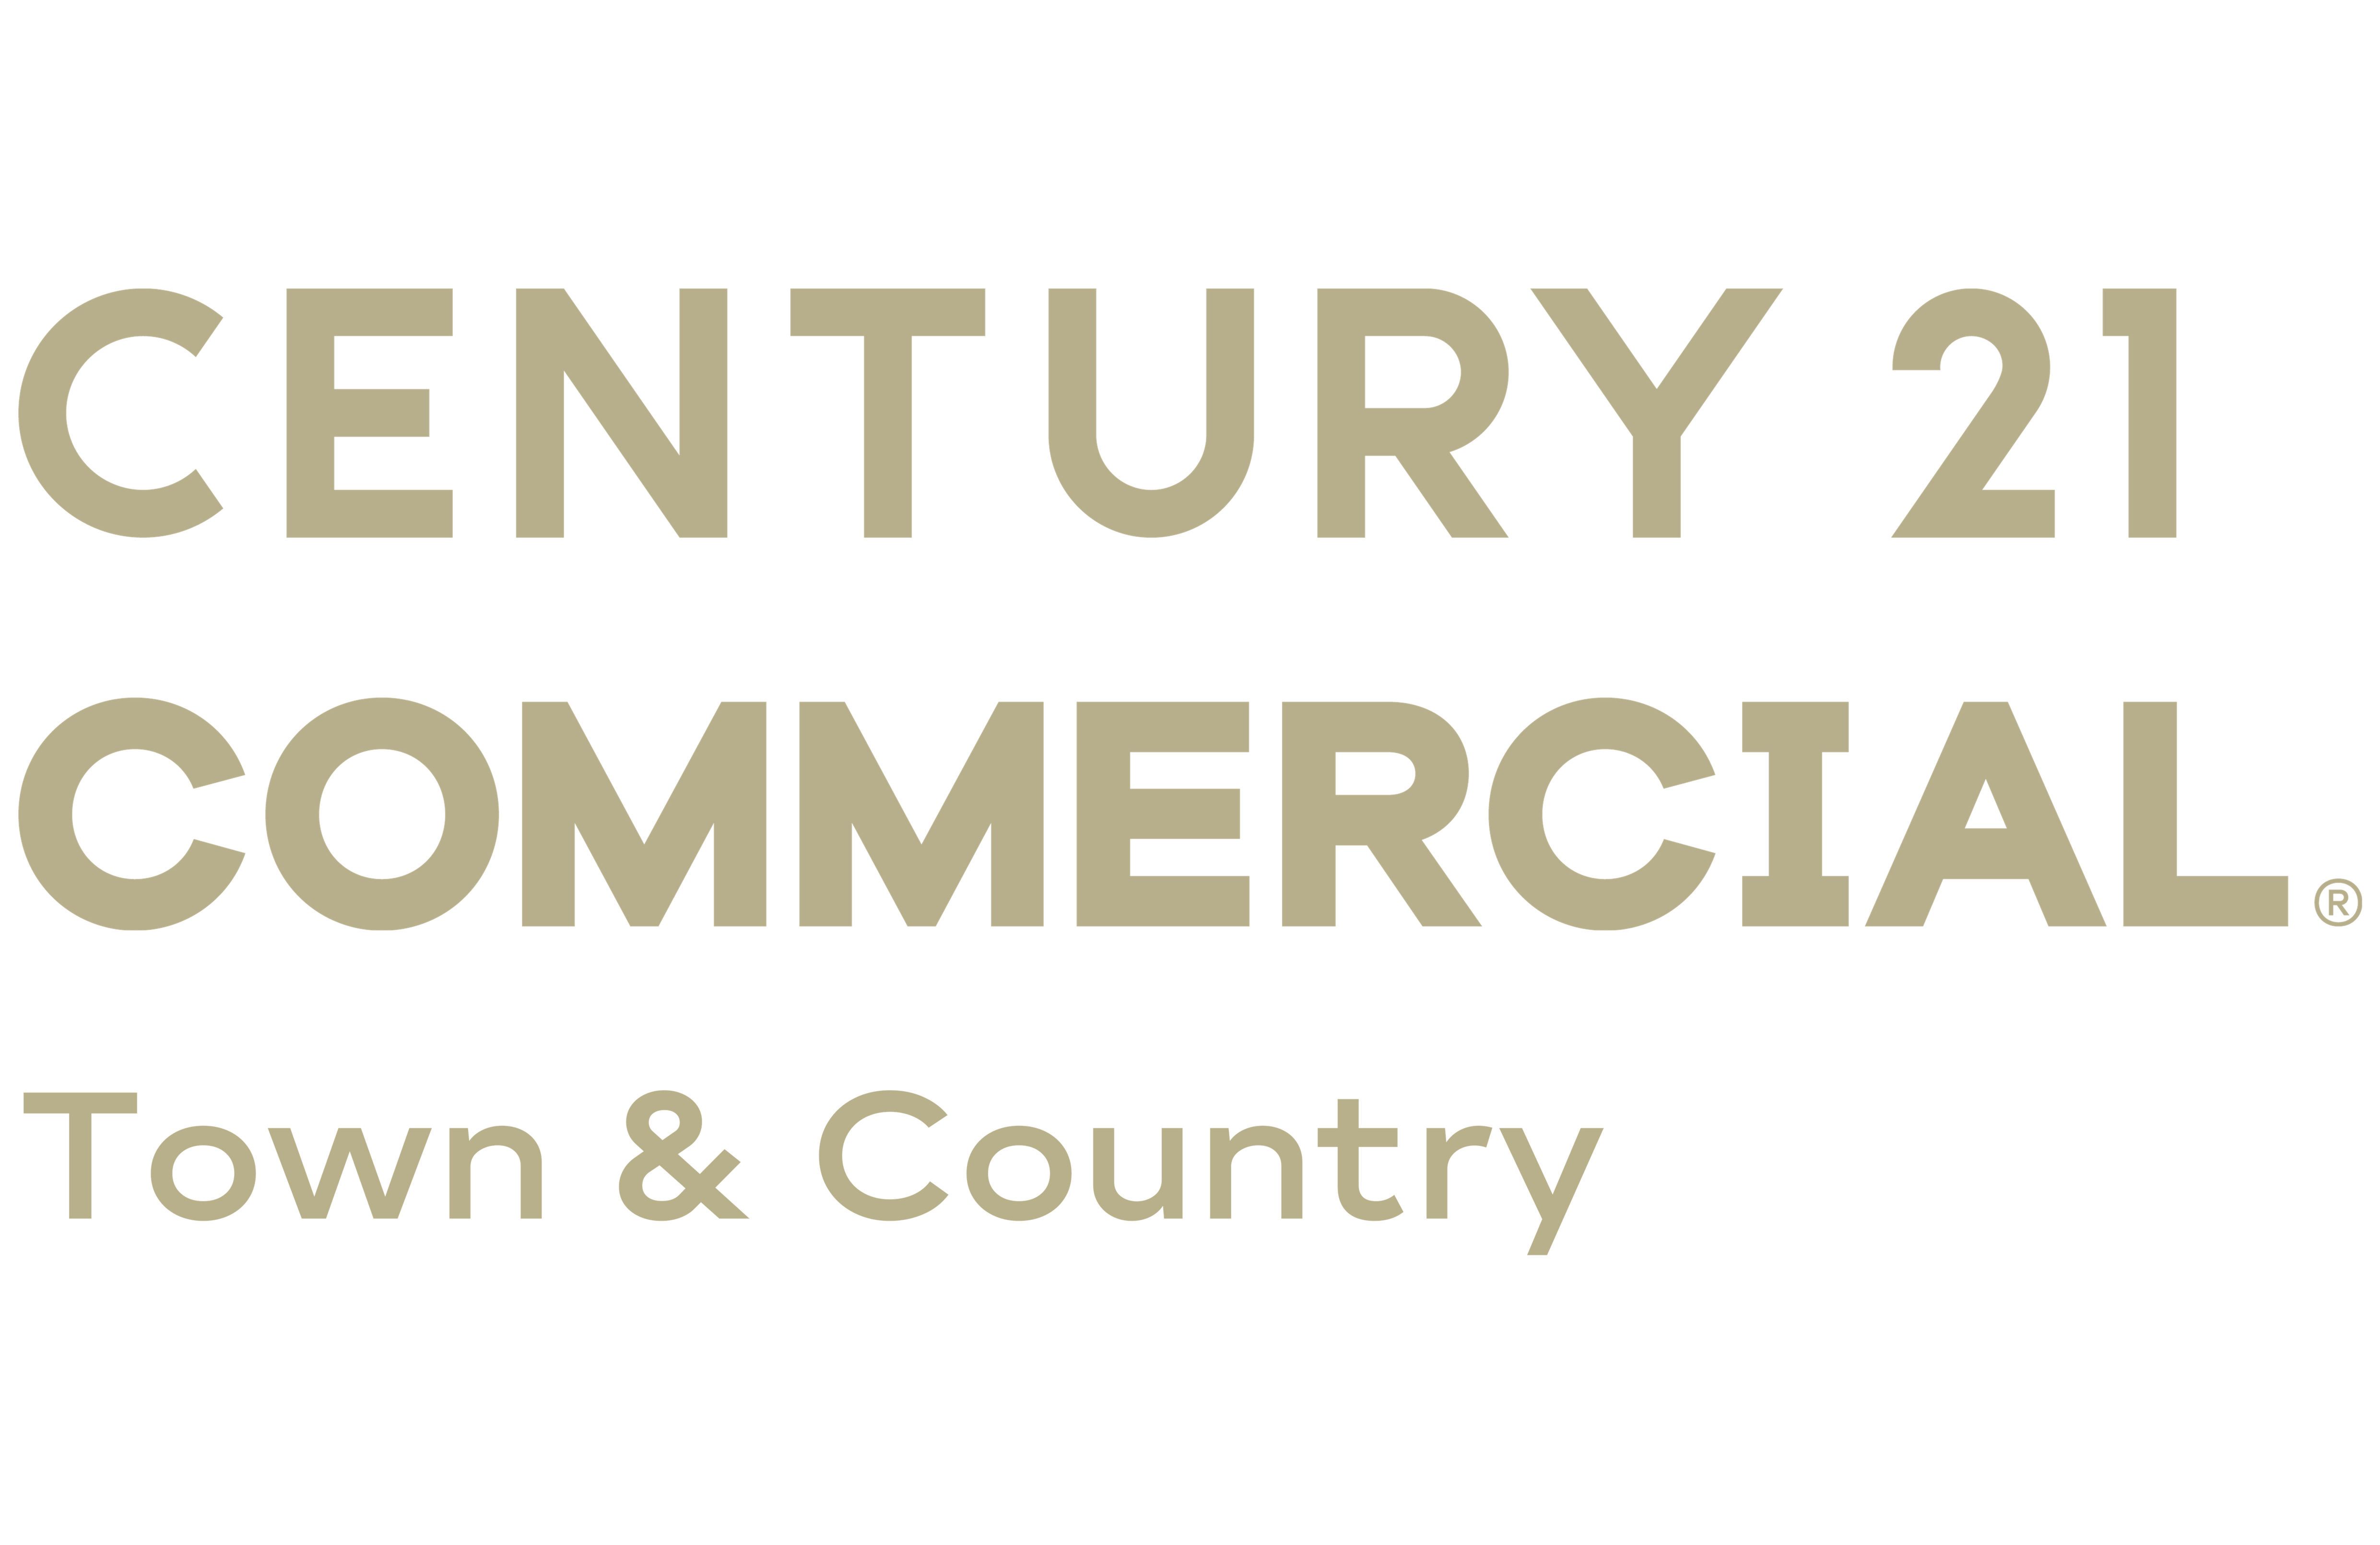 CENTURY 21 Town & Country